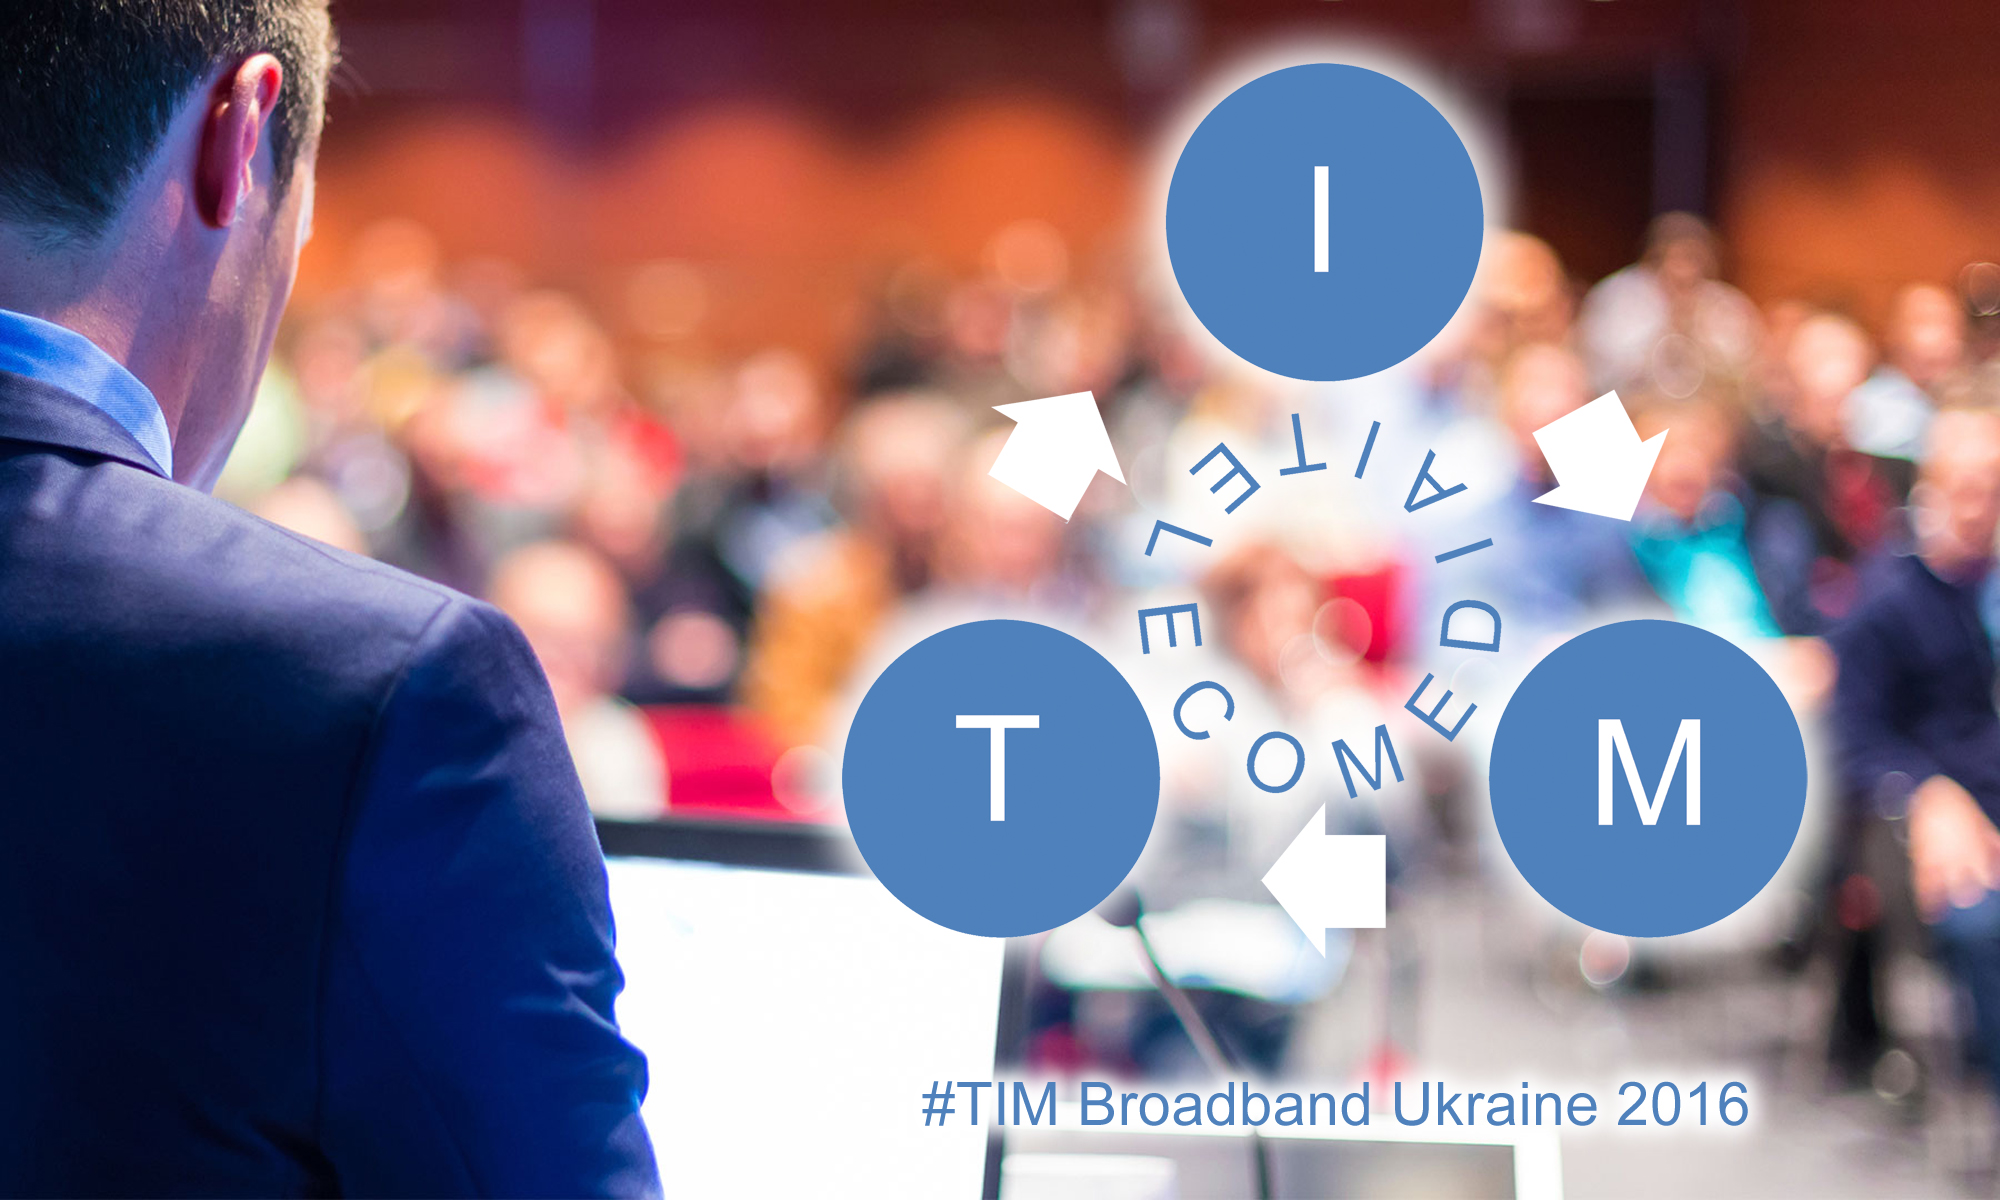 #TIM Broadband Ukraine 2016